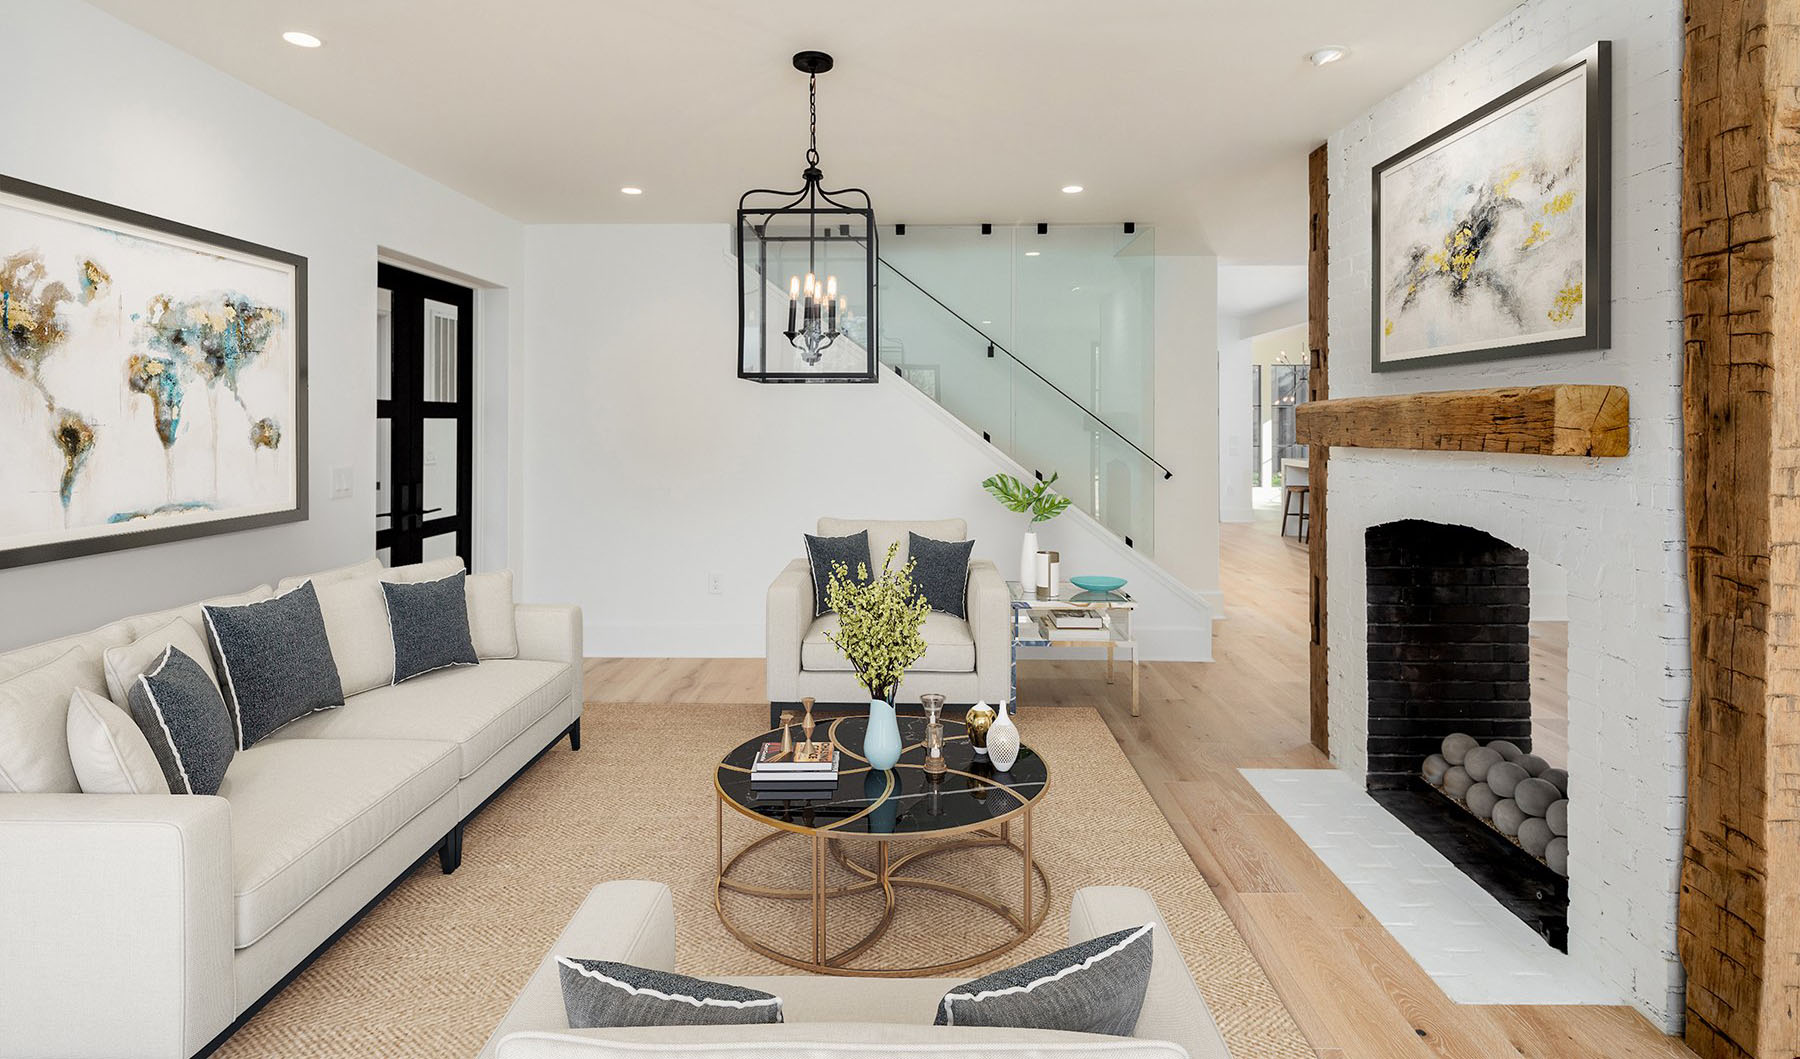 Farmhouse living room with Pure White paint, exposed wood beams and a white brick fireplace.